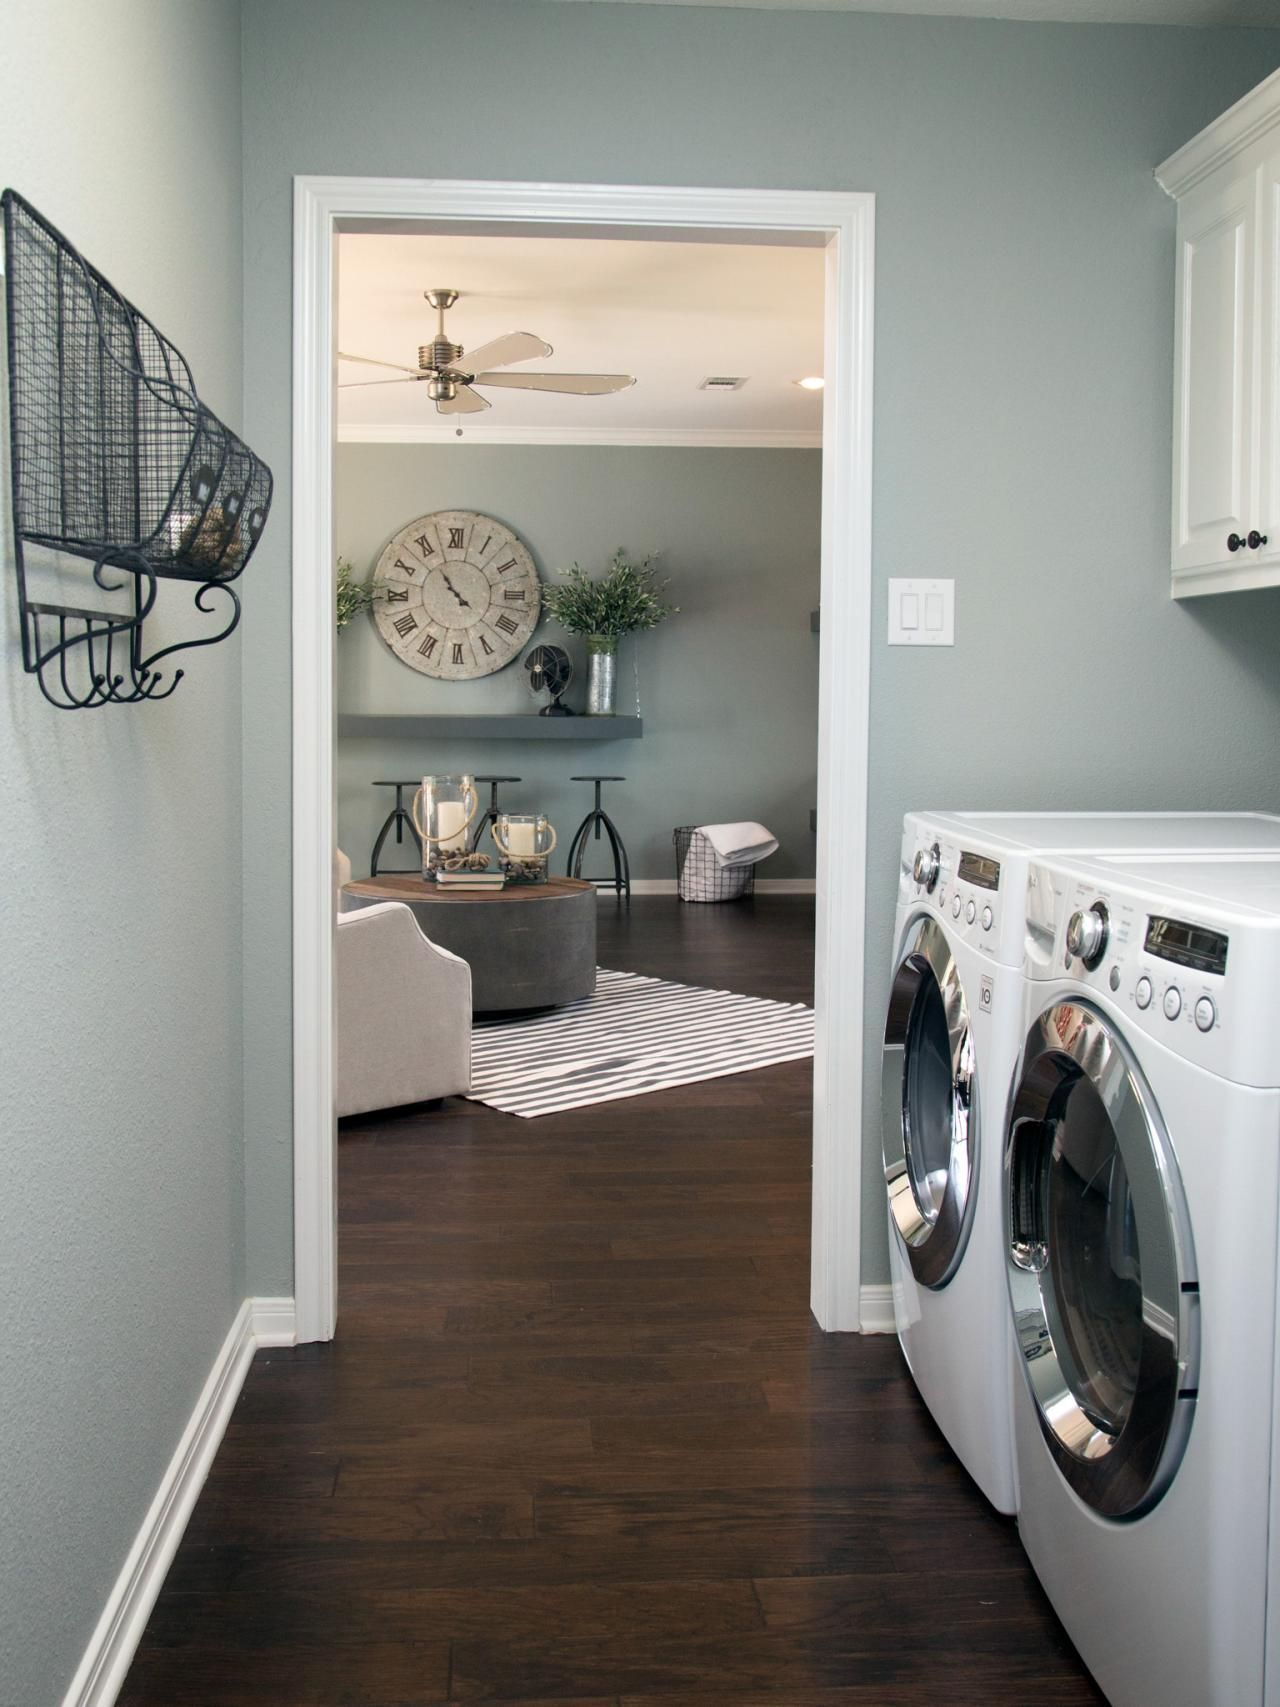 More Ideas Below #Basementideas #Laundryroomideas Unfinished Basement Laundry Room Layout